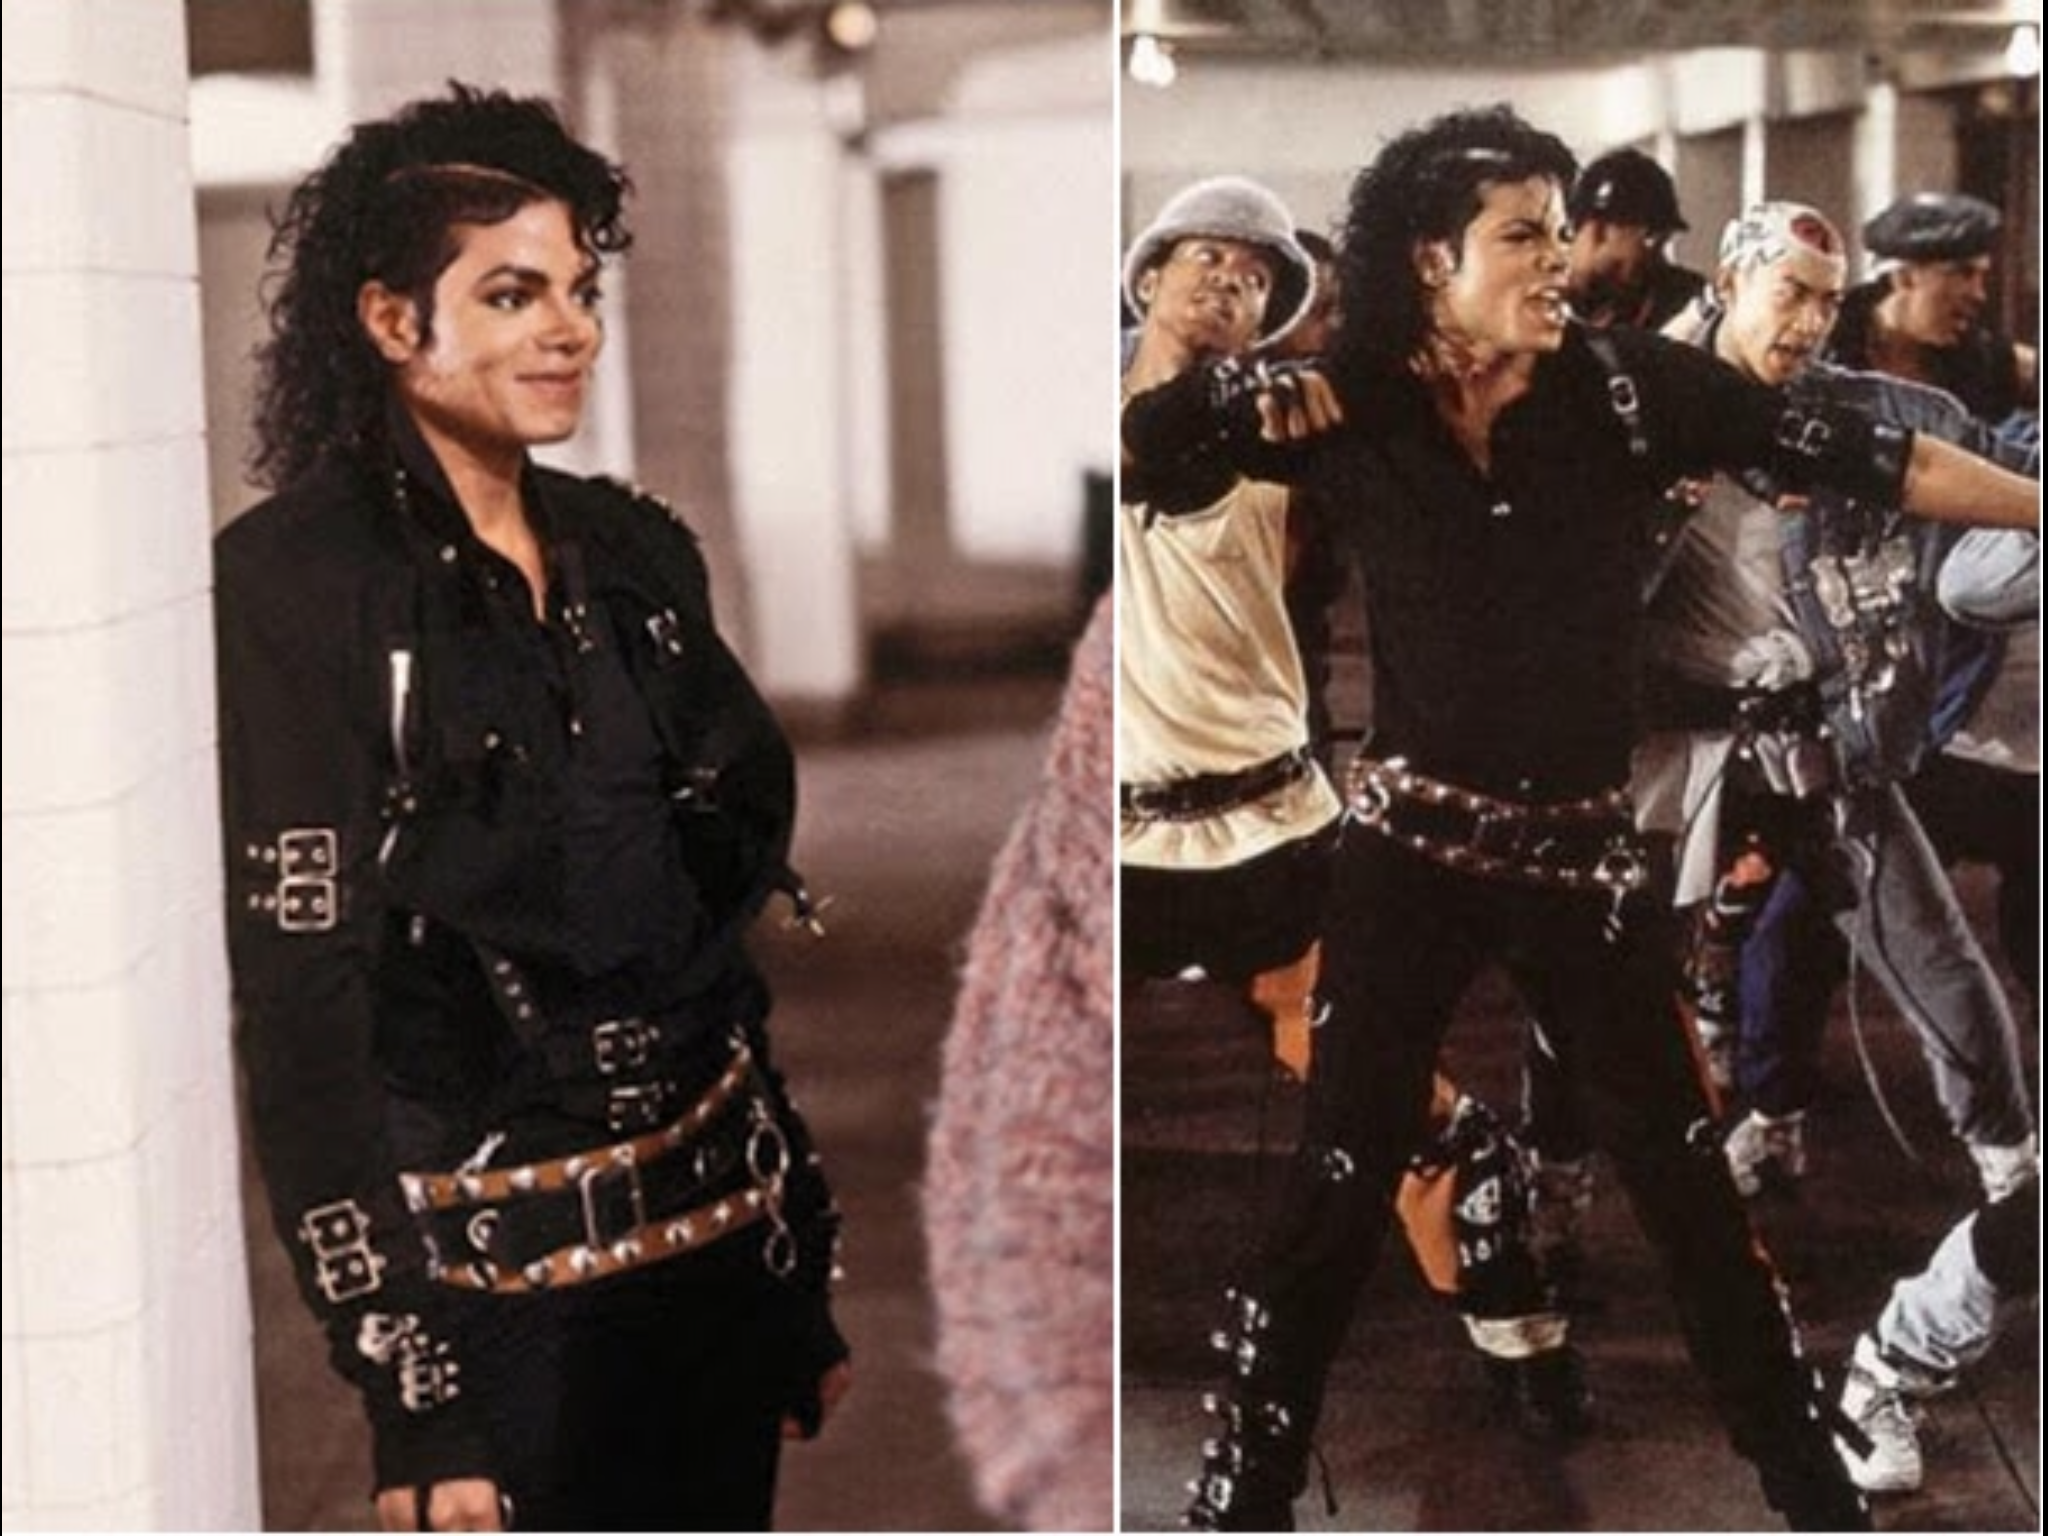 Pin By Silver Moon On Michael Jackson Michael Jackson Bad Era Michael Jackson Michael Jackson Bad